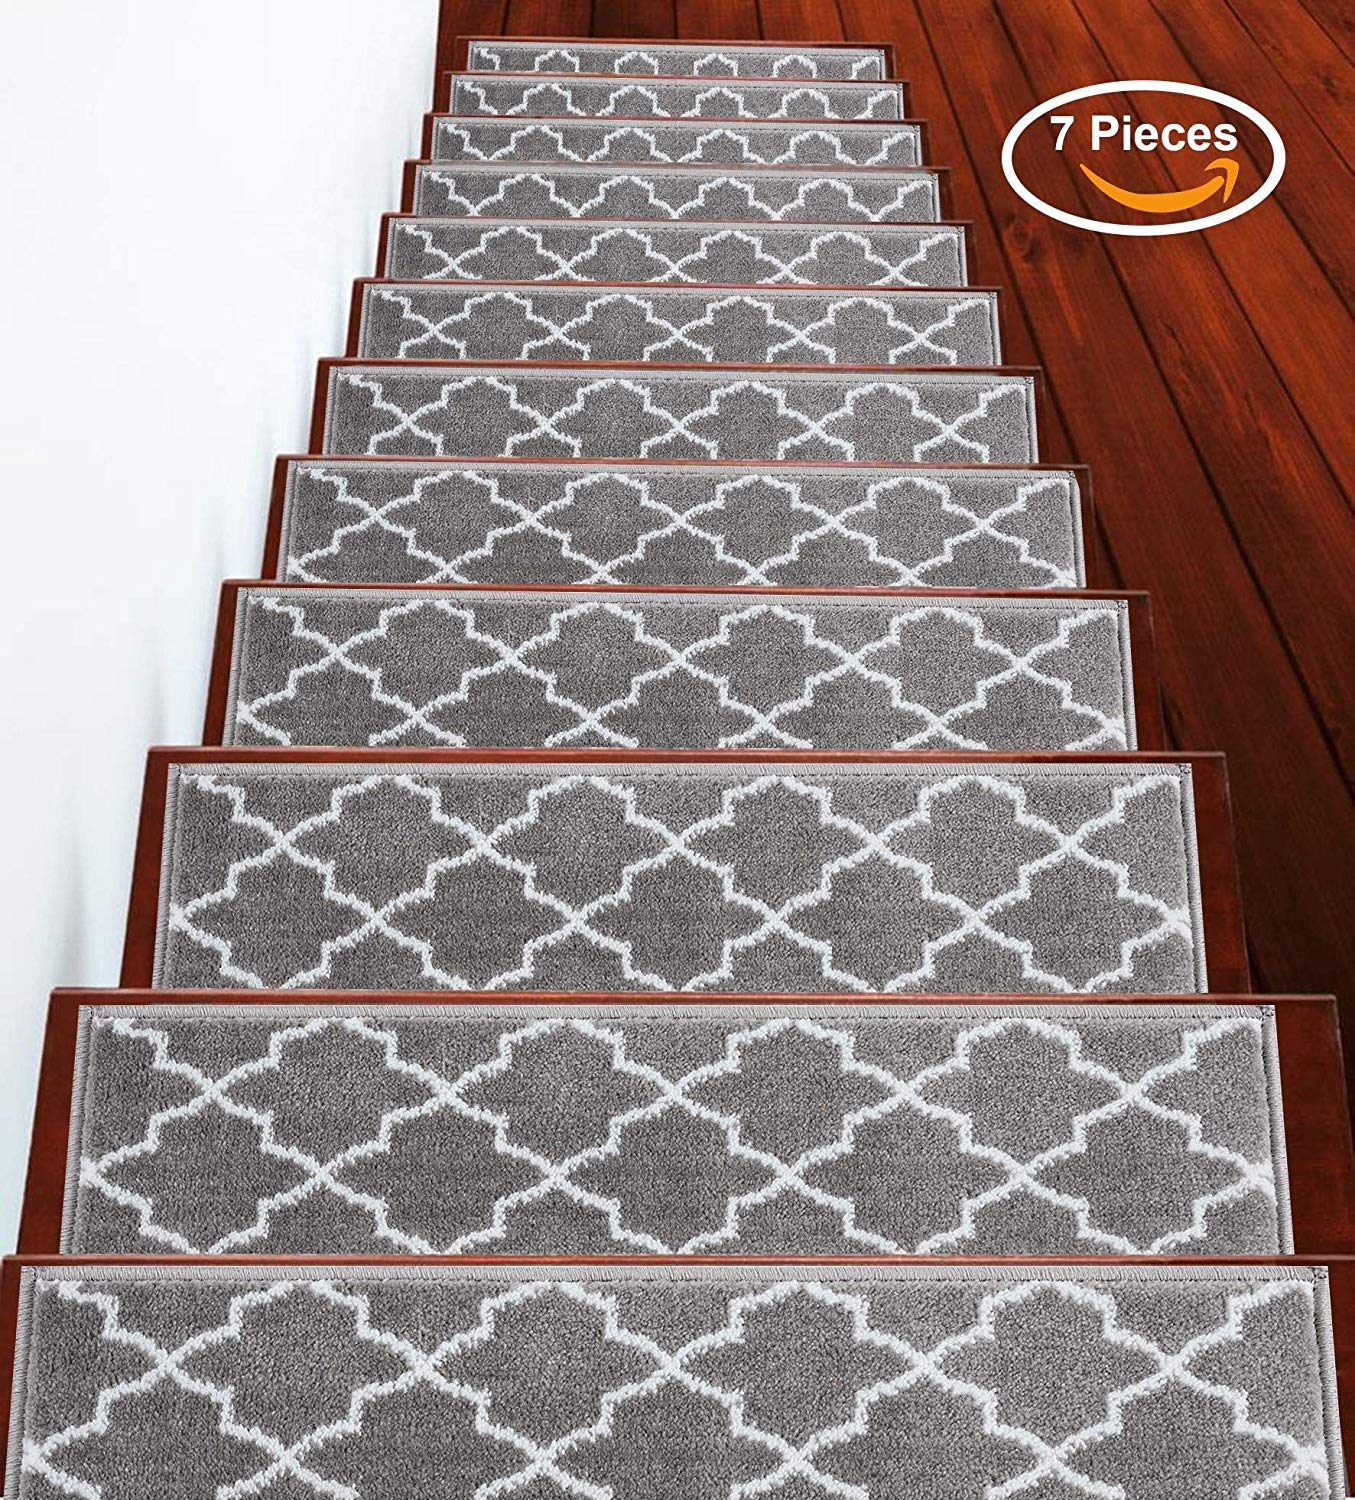 Sussexhome Stair Treads Stairs Slide Carpet Stair Tread Non | Gray Carpet On Stairs | Contemporary | Geometric | Design | Grey Pattern | Farmhouse